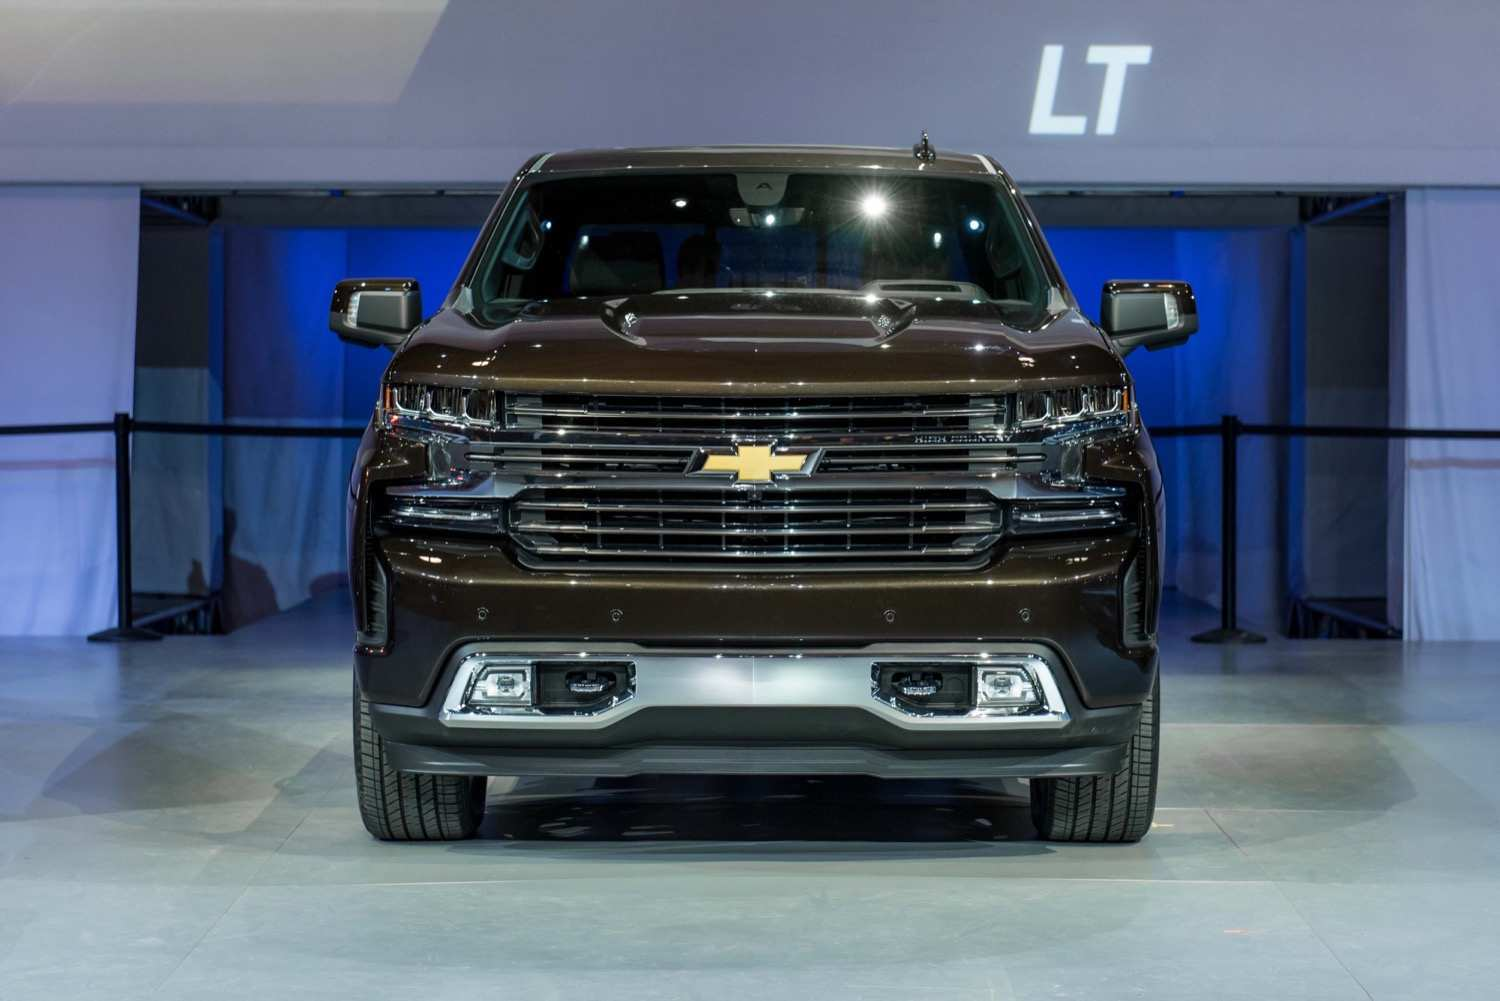 41 Best Review 2019 Chevrolet Hd 2500 Spy Shoot by 2019 Chevrolet Hd 2500